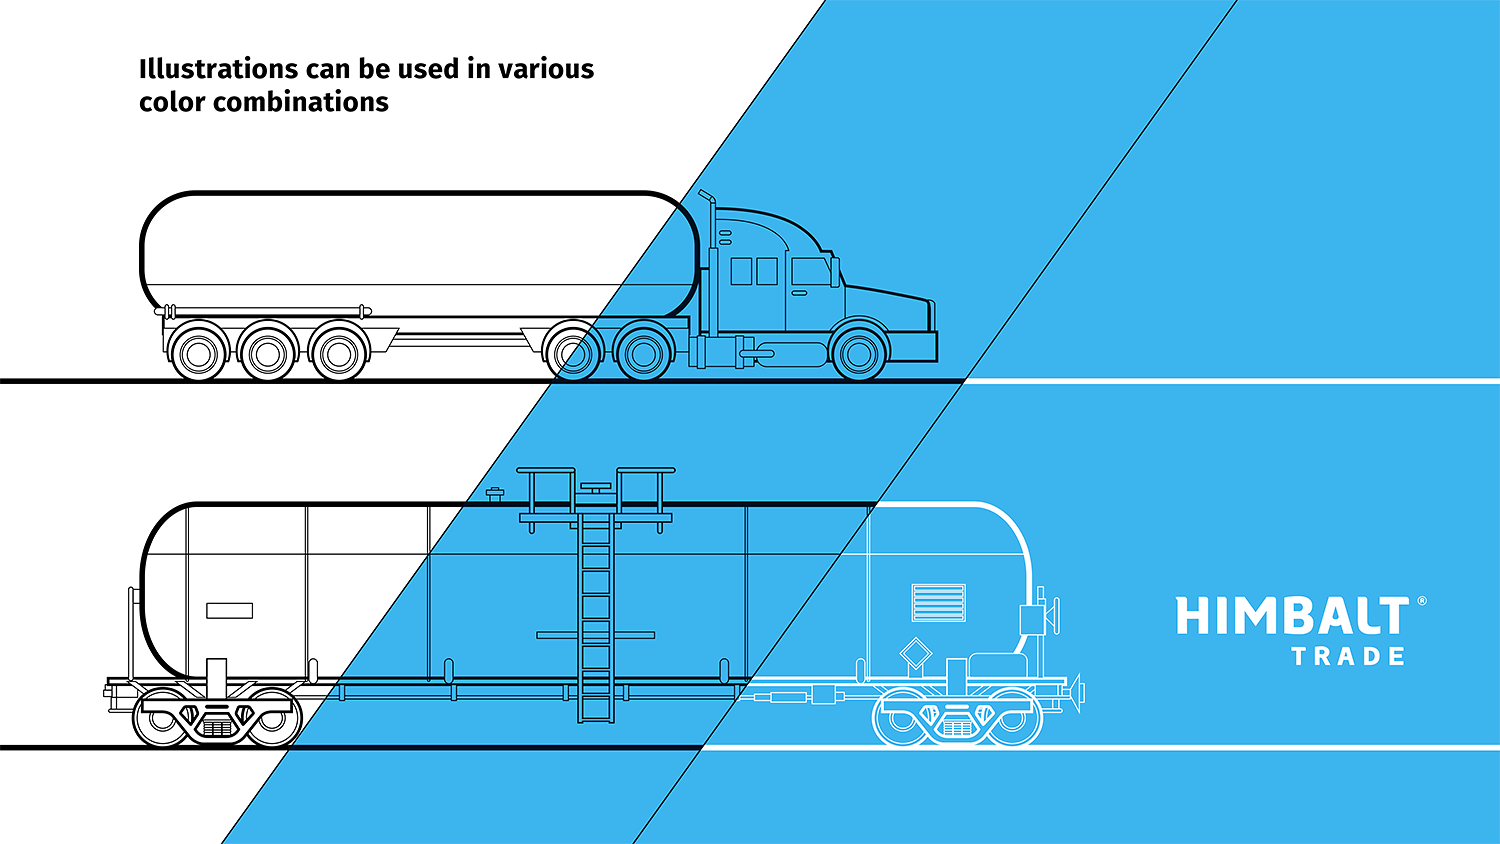 A railway tank car, linear illustration. A linear drawing of the Himbalt Trade tank truck for transportation of petroleum products.